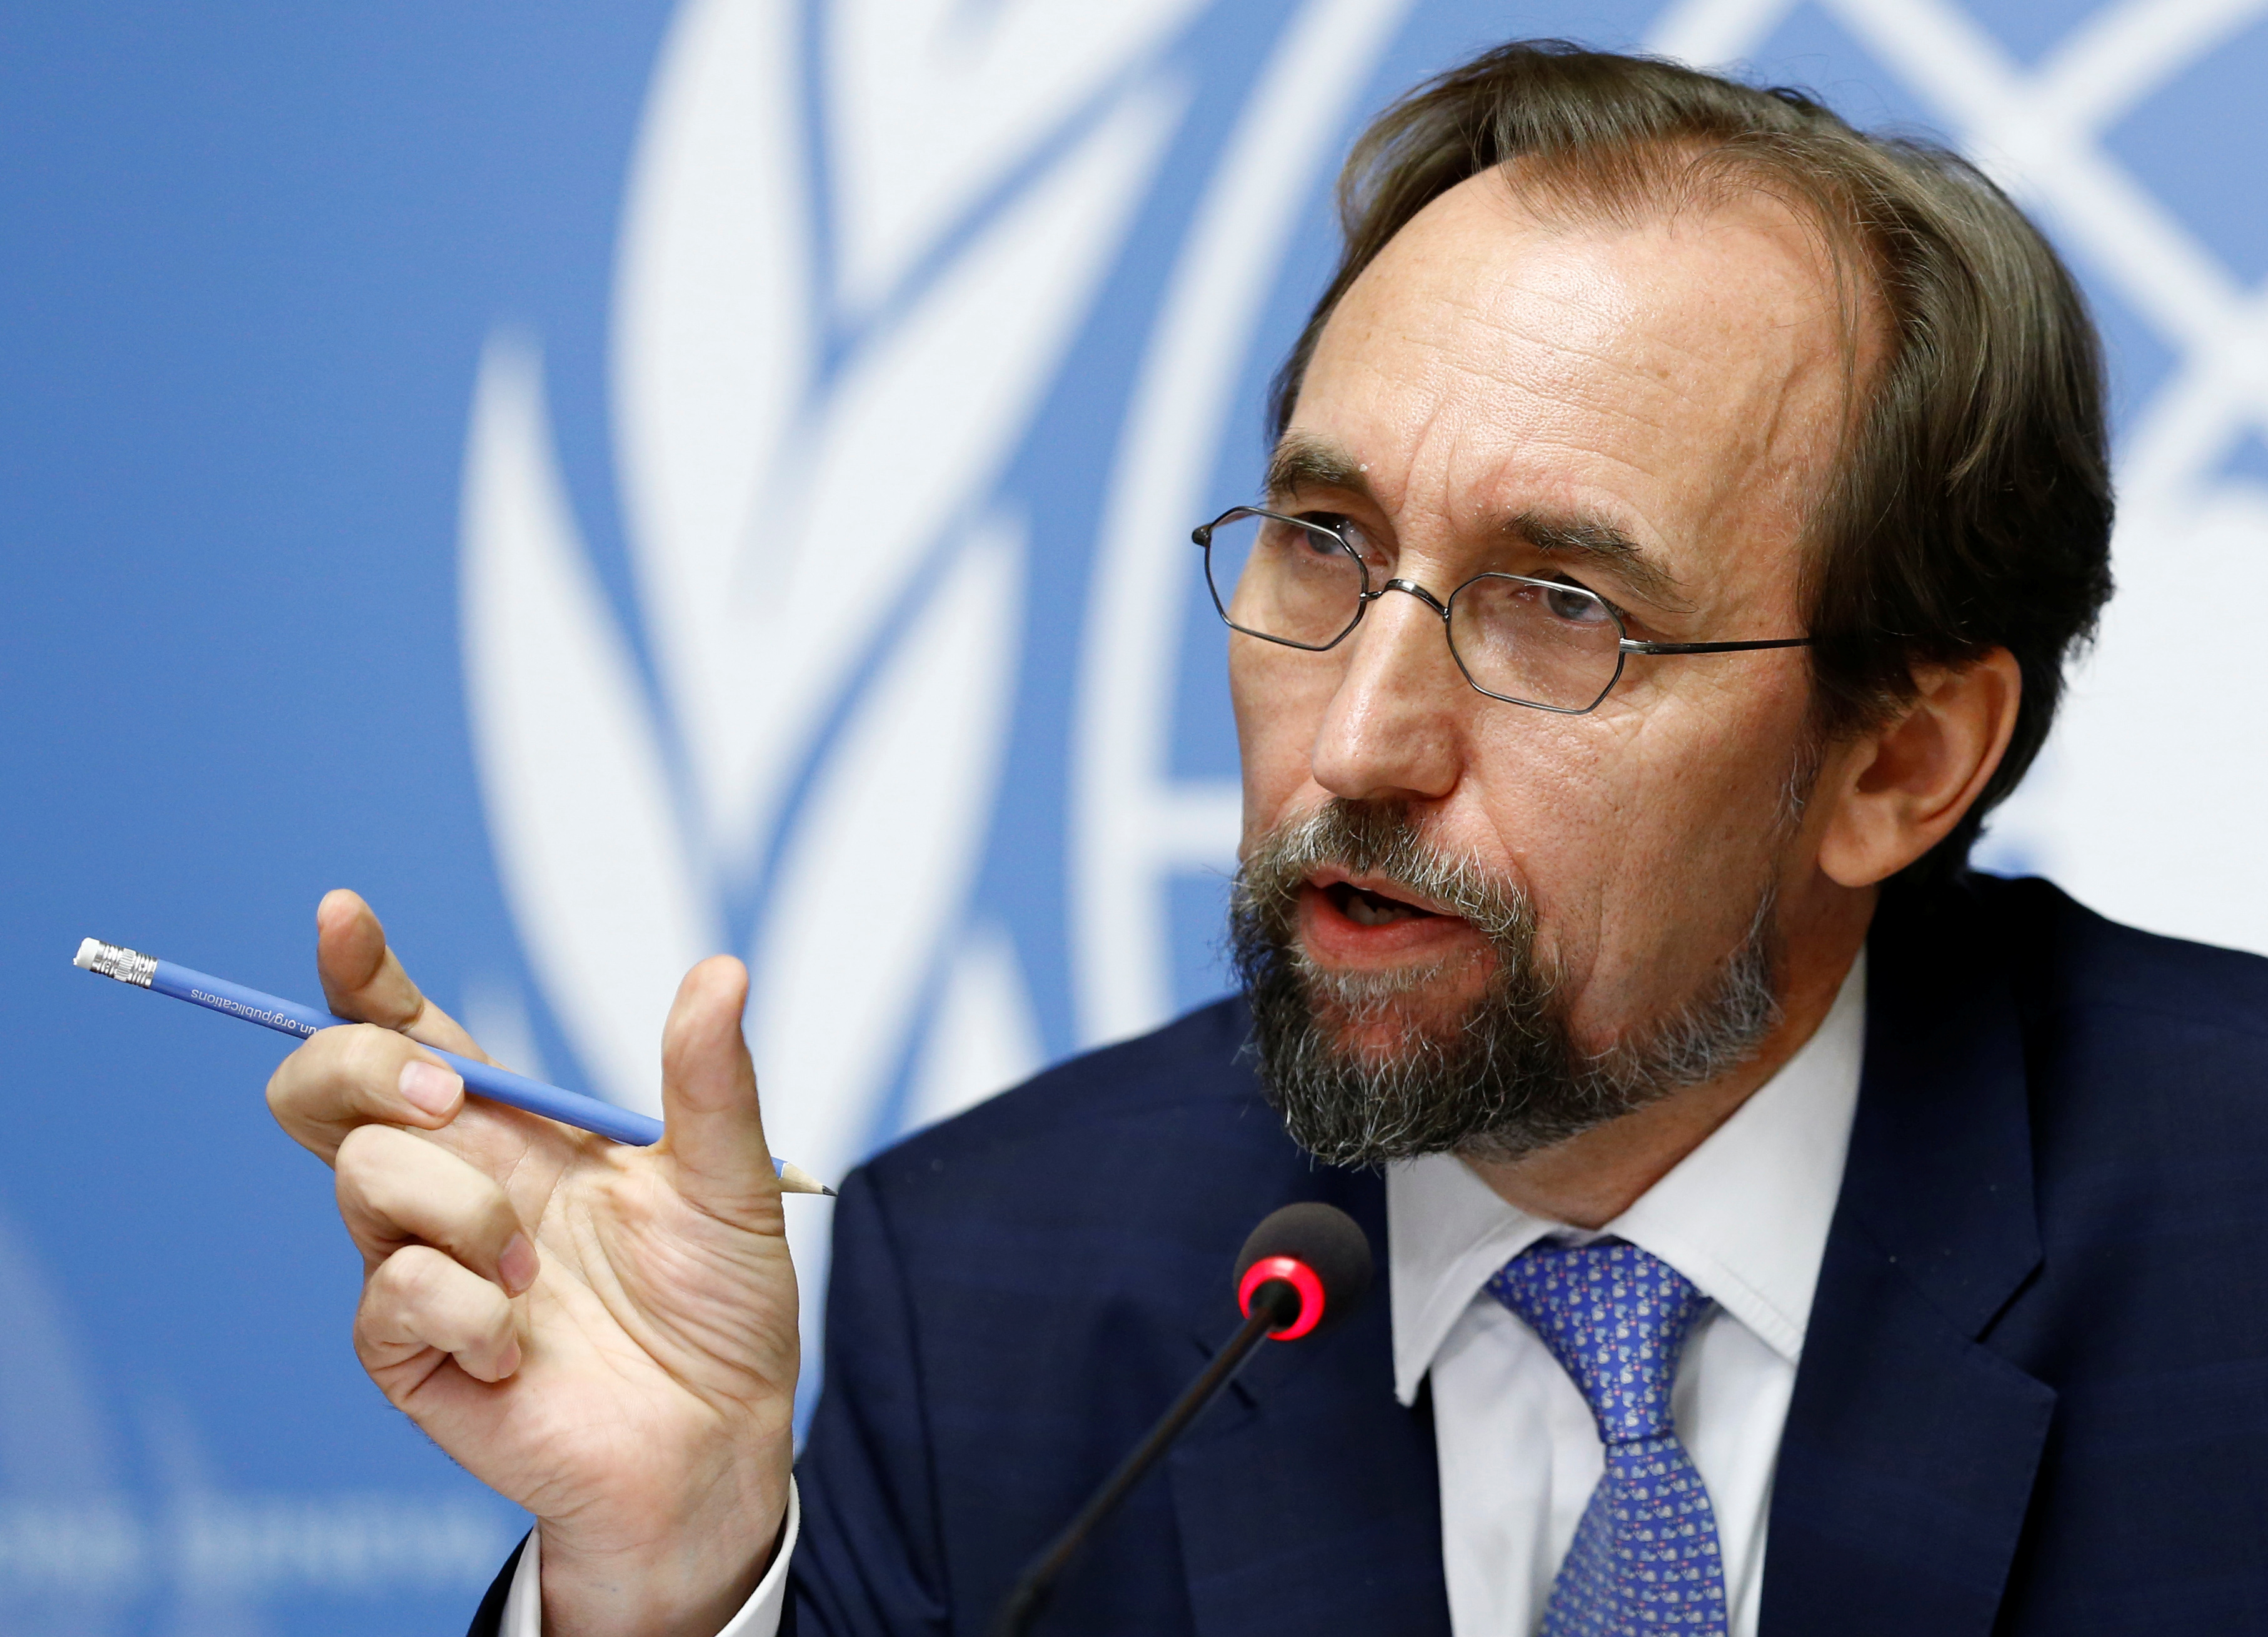 Zeid Ra'ad Al Hussein, U.N. High Commissioner for Human Rights attends a news conference on Venezuela at the United Nations Office in Geneva, Switzerland, Aug. 30, 2017.